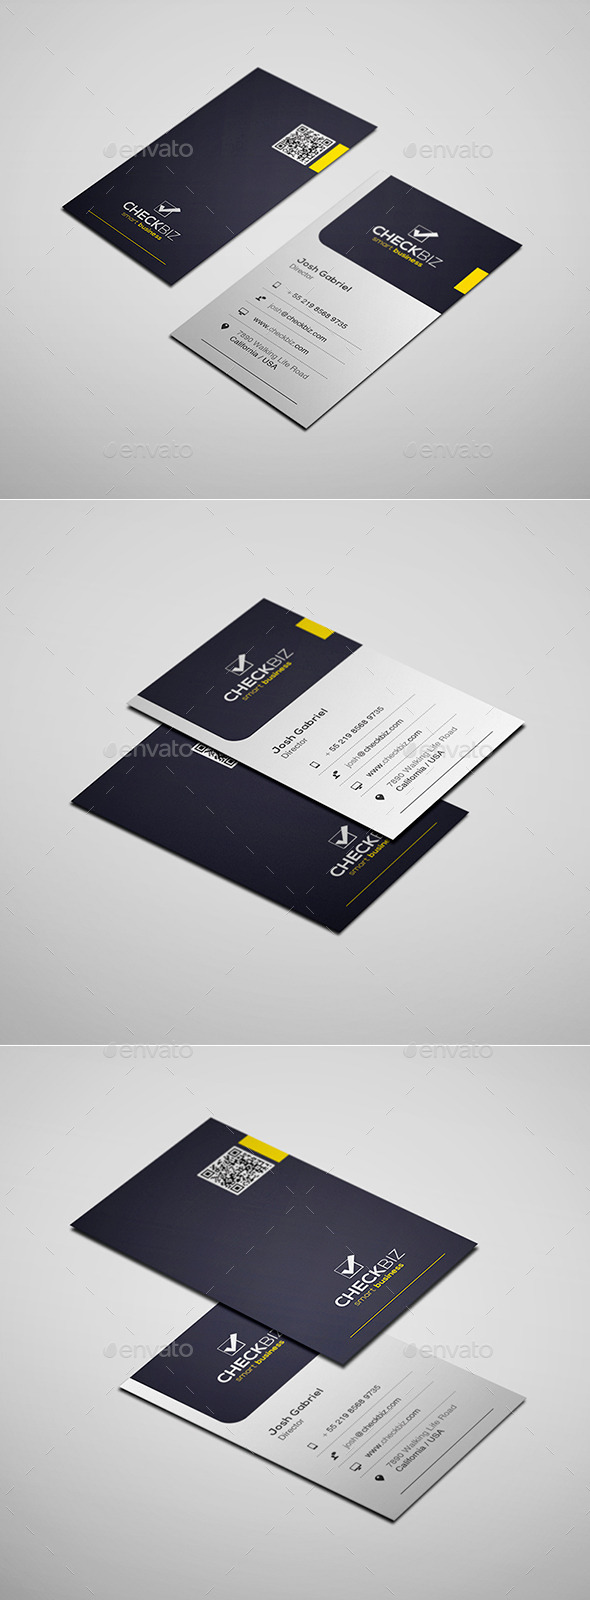 GraphicRiver Business Card Vol 14 11592743